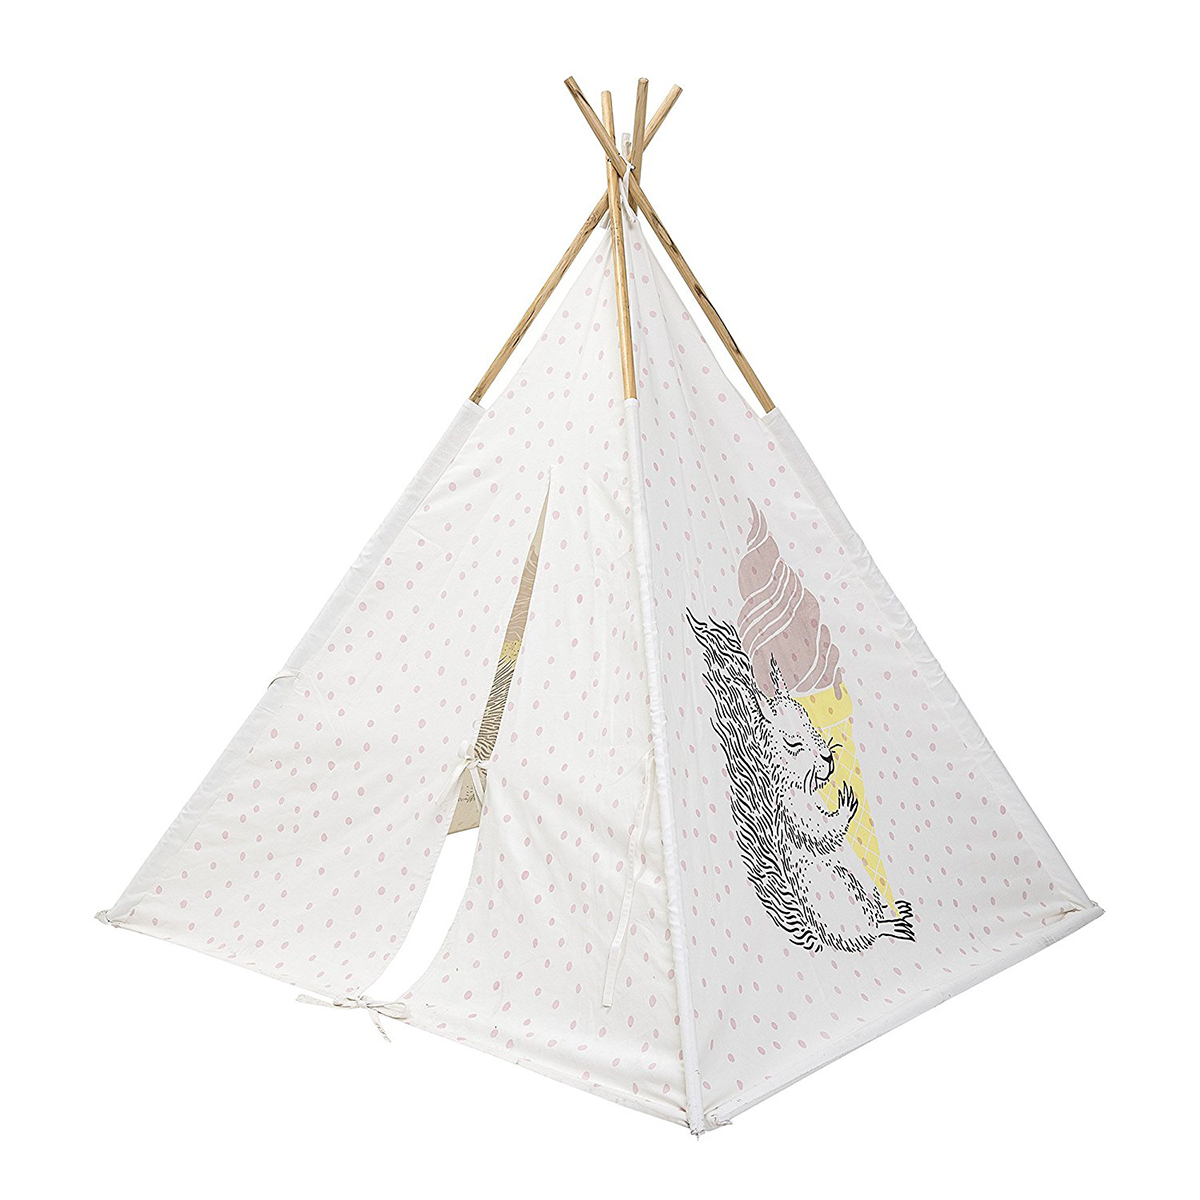 Bloomingville kinder spielzelt indianerzelt kinder tipi rose - Bloomingville kinder ...